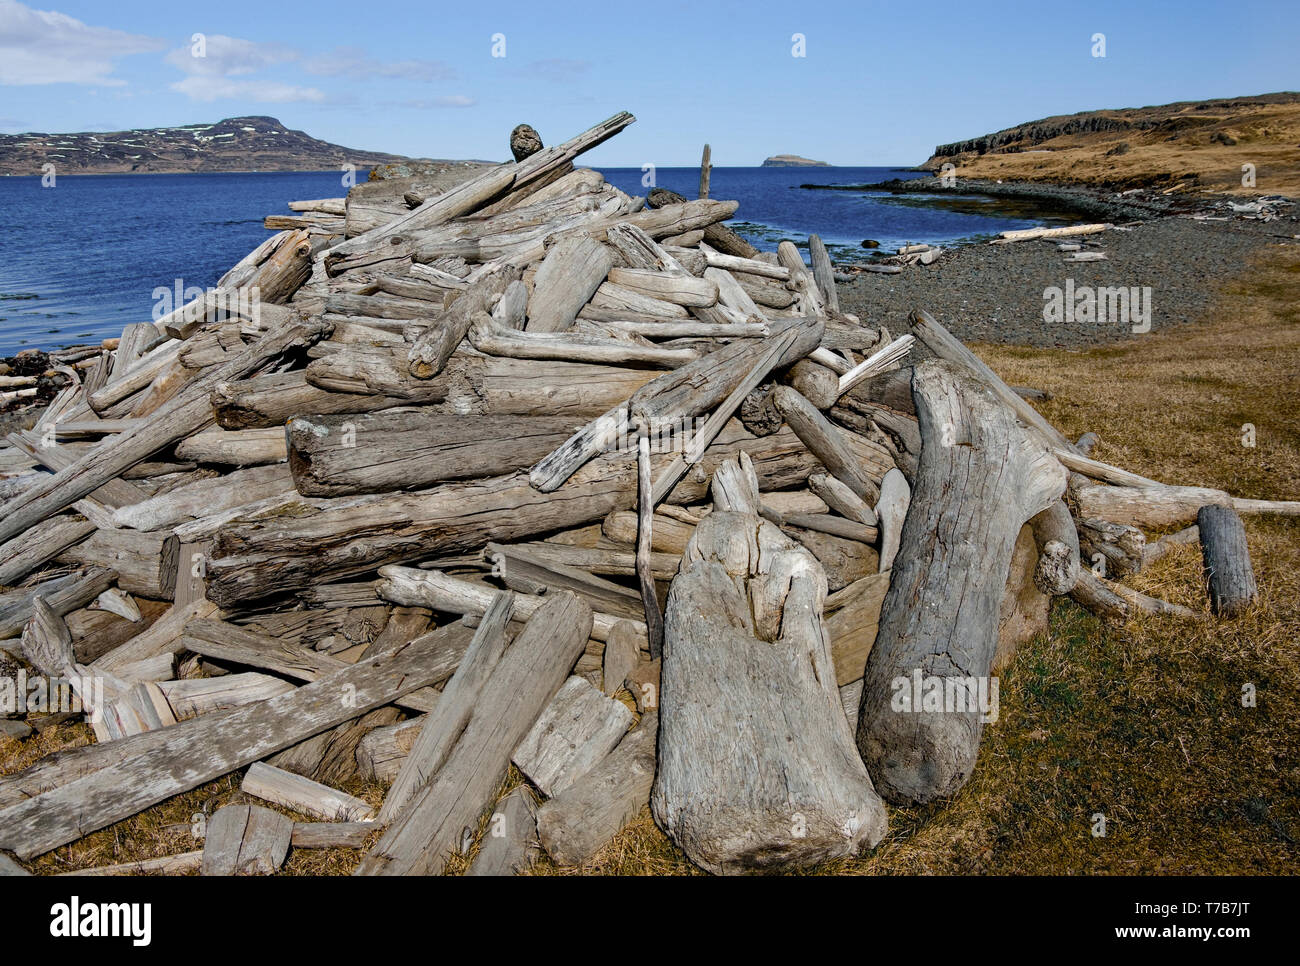 Icelandic Driftwood:  Logs, sticks and branches washed up on the shores of Iceland sit in a stack gathered as a form of small industry. - Stock Image